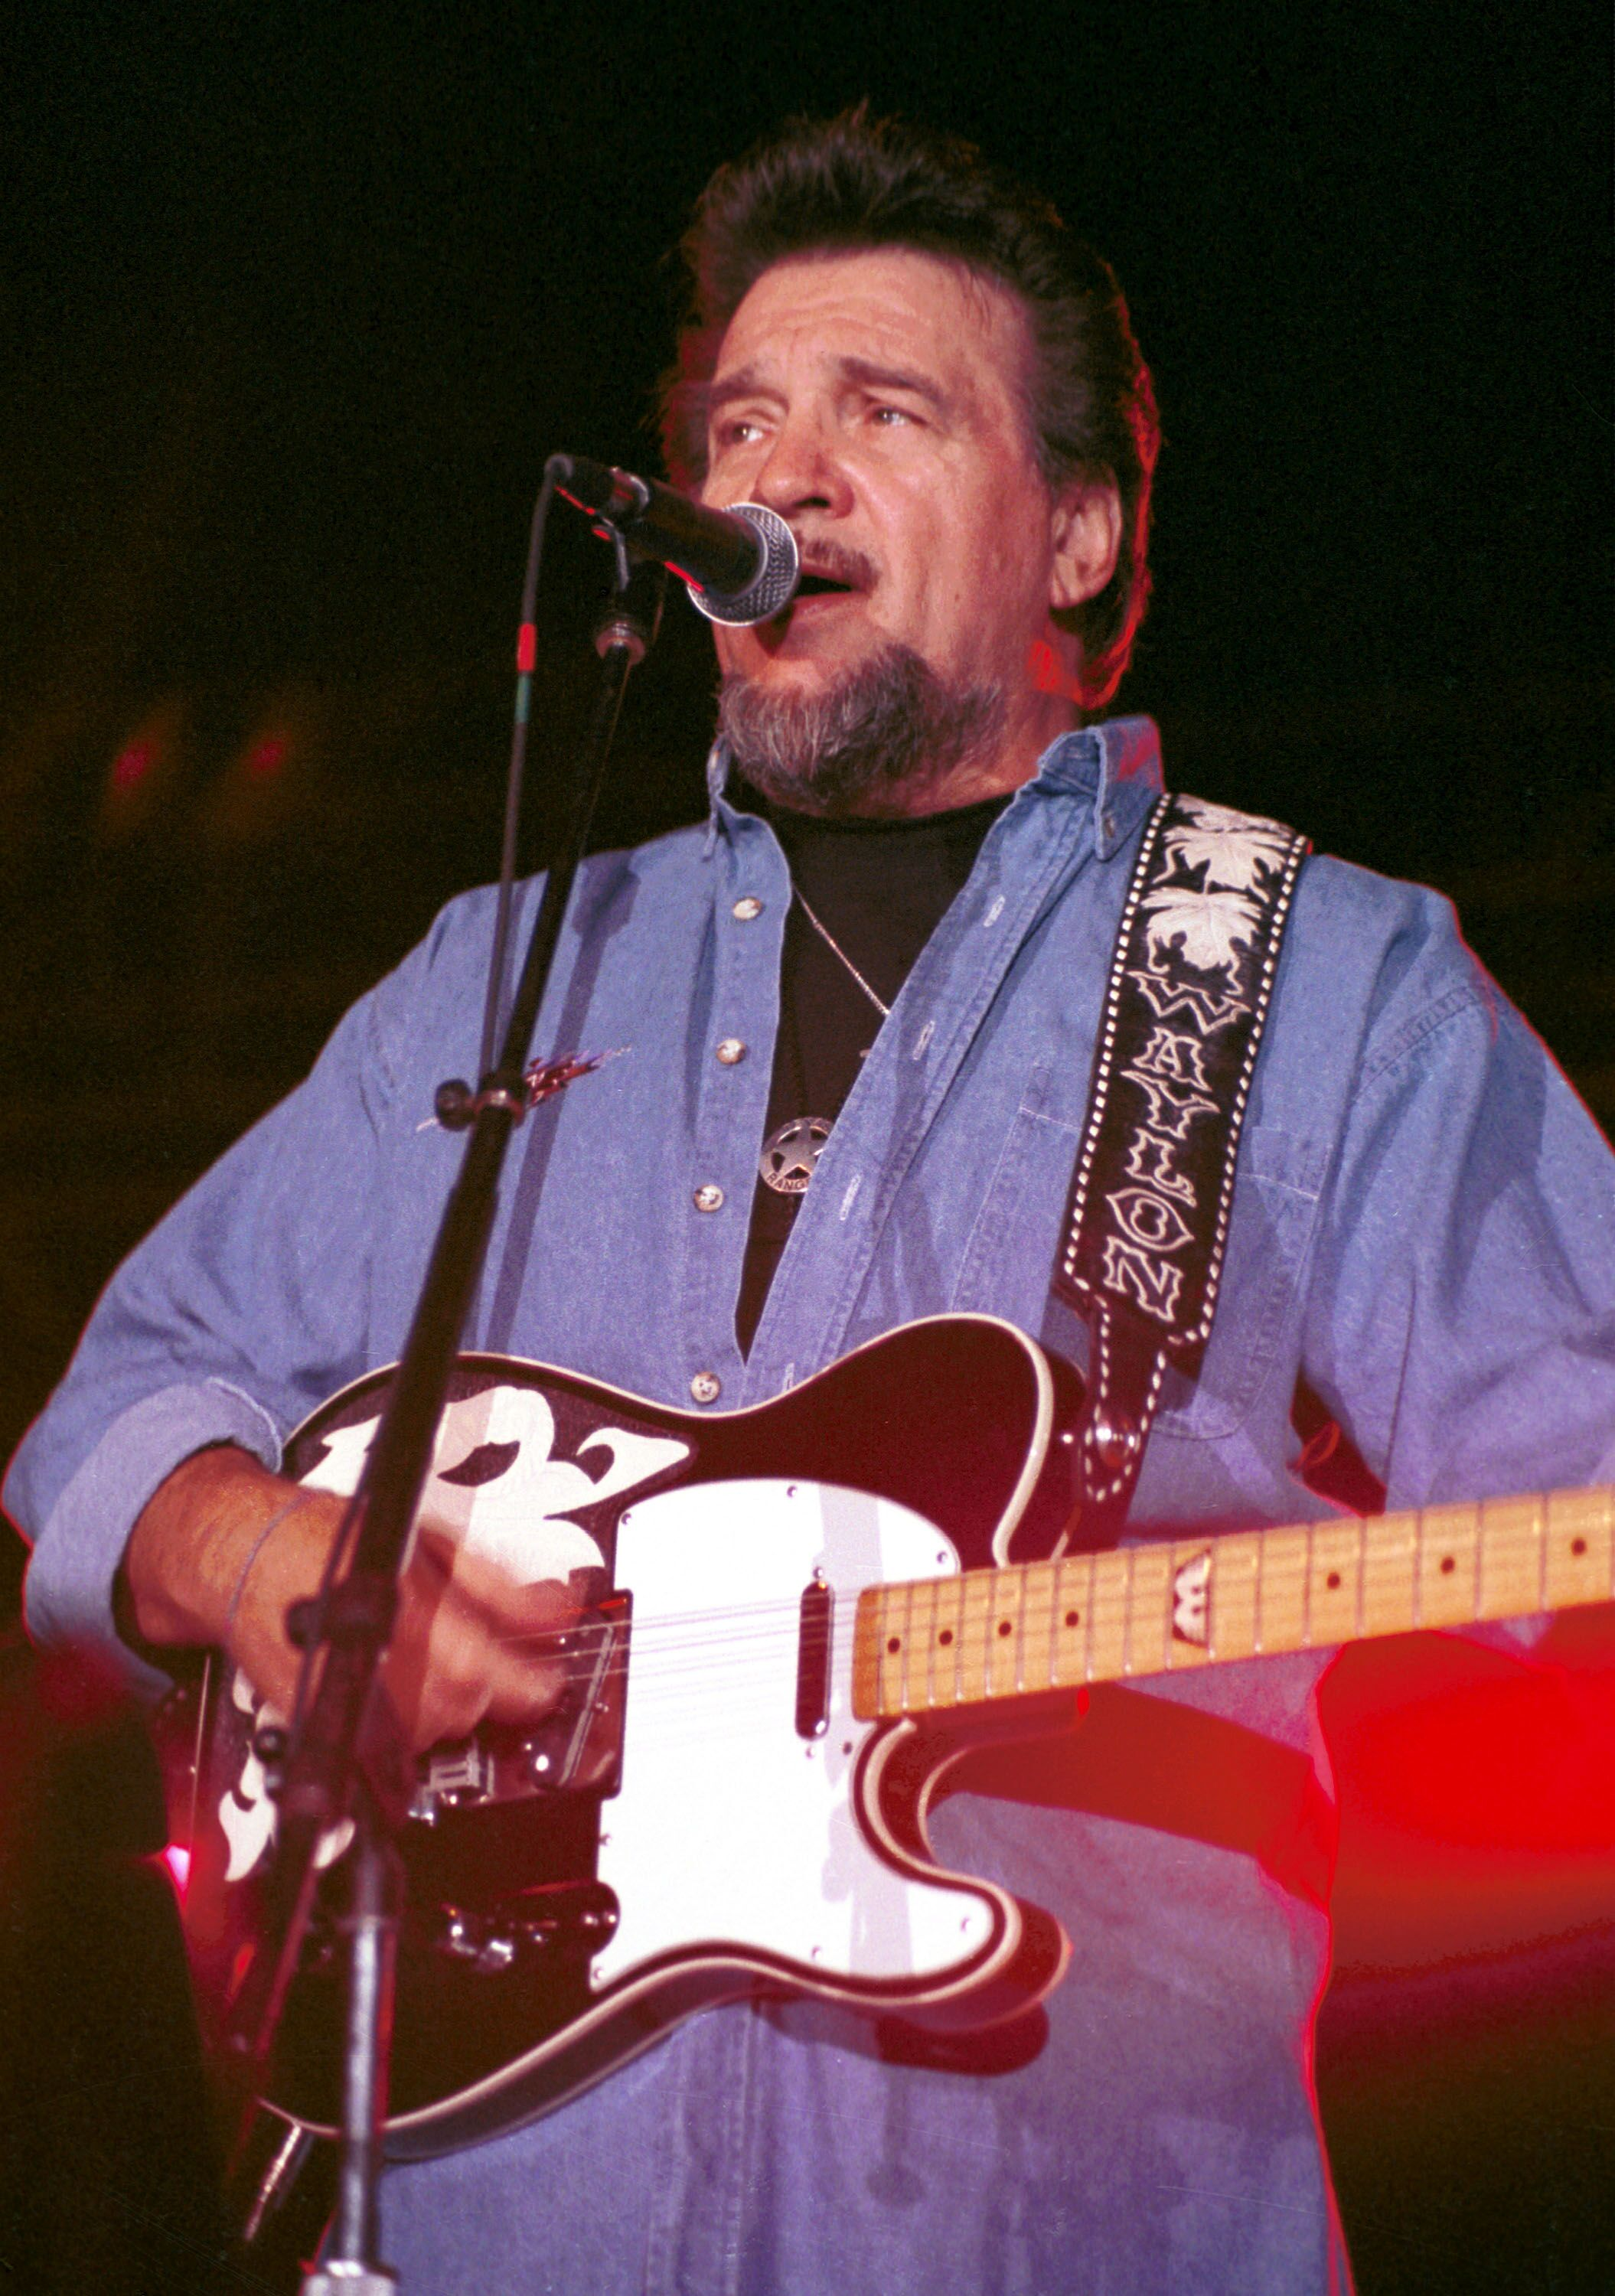 Waylon Jennings performs at the Highwaymen. | Source: Getty Images